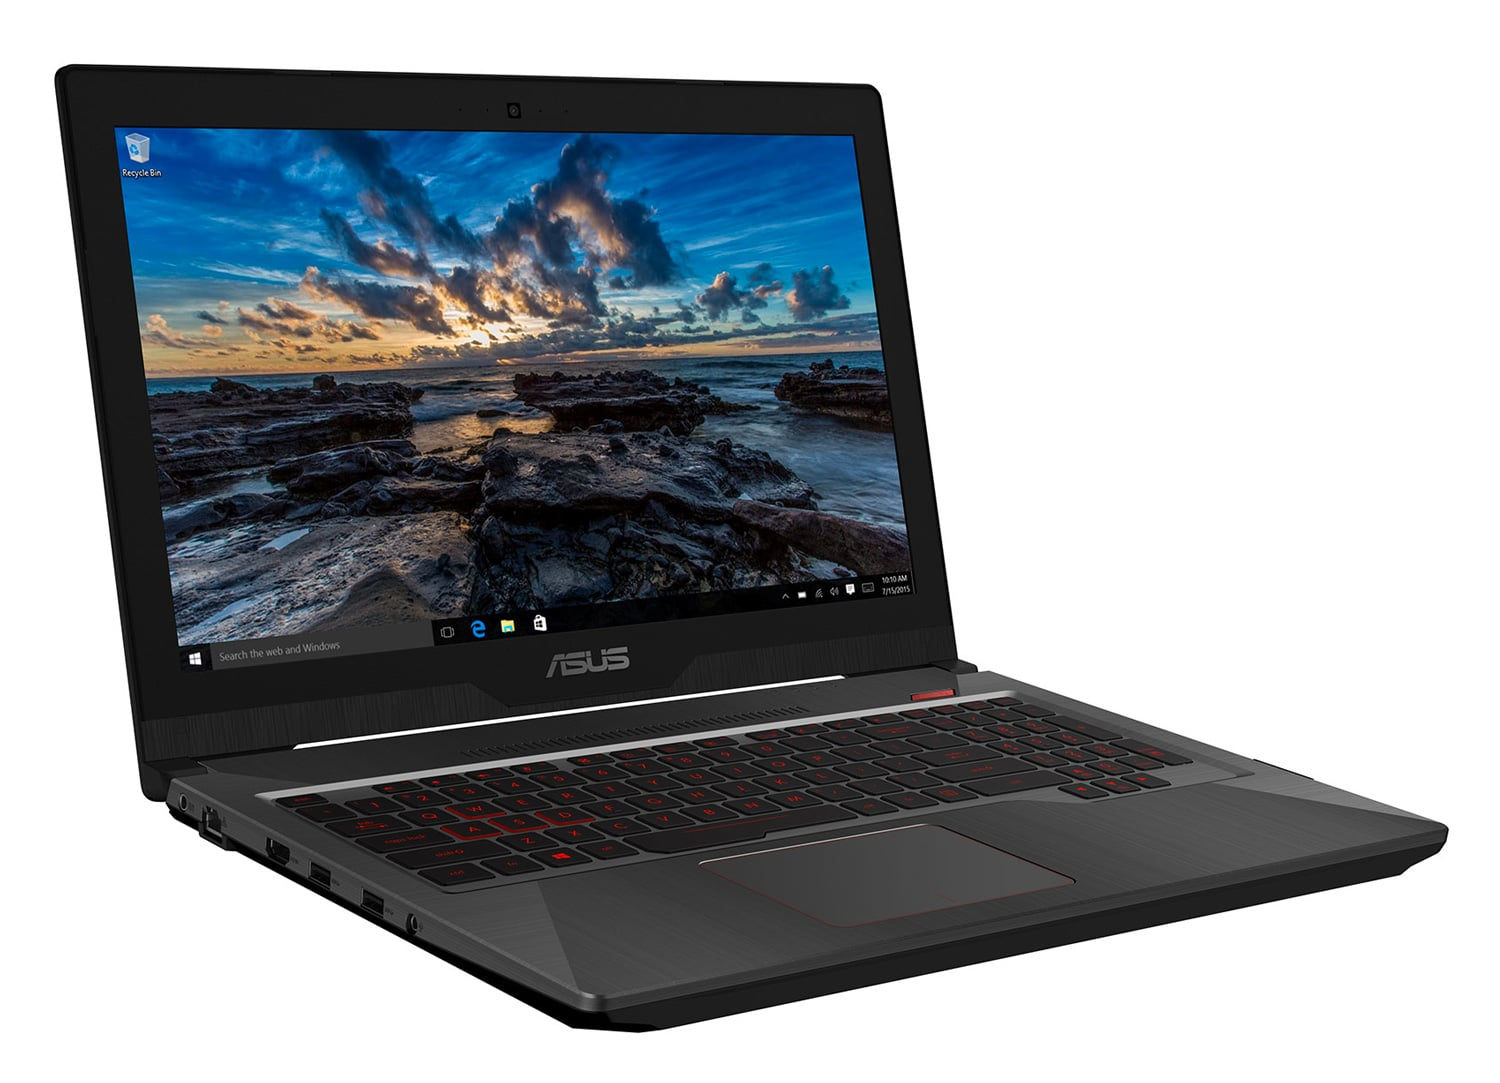 Asus FX503VD-DM044T, PC 15 pouces Full SSD/HDD GTX 1050 (699€)